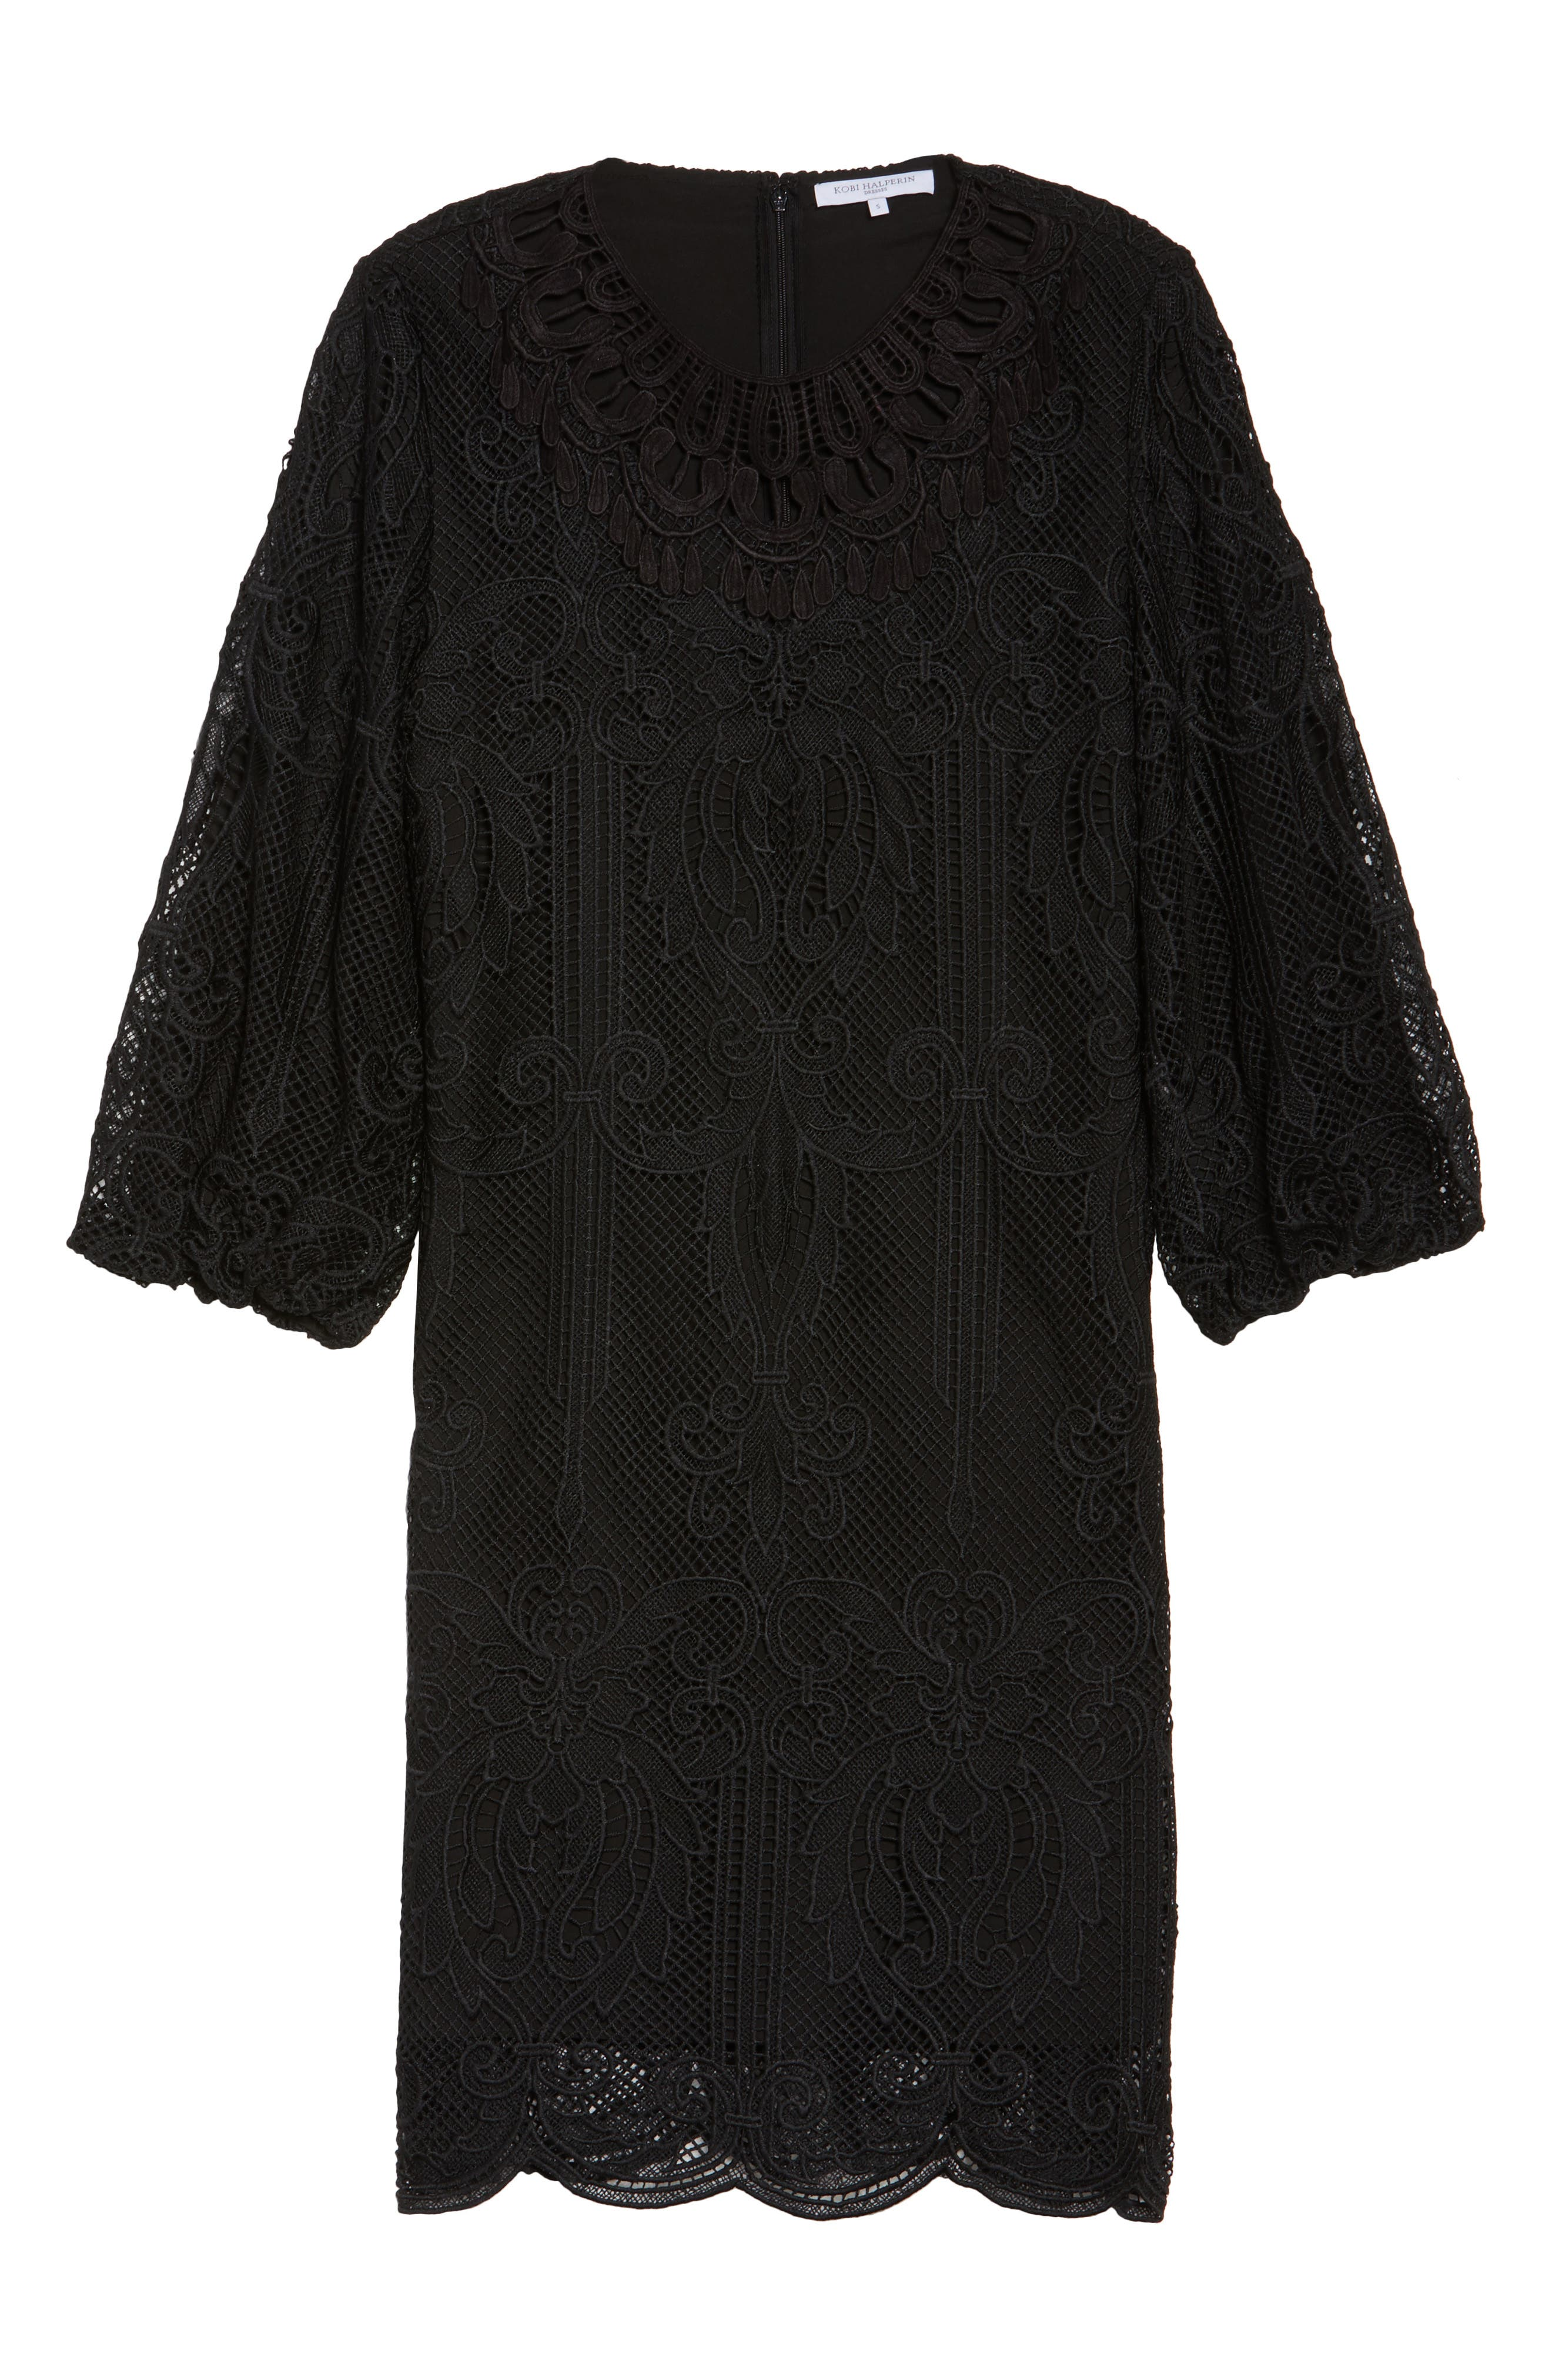 Kandace Lace Shift Dress,                             Alternate thumbnail 11, color,